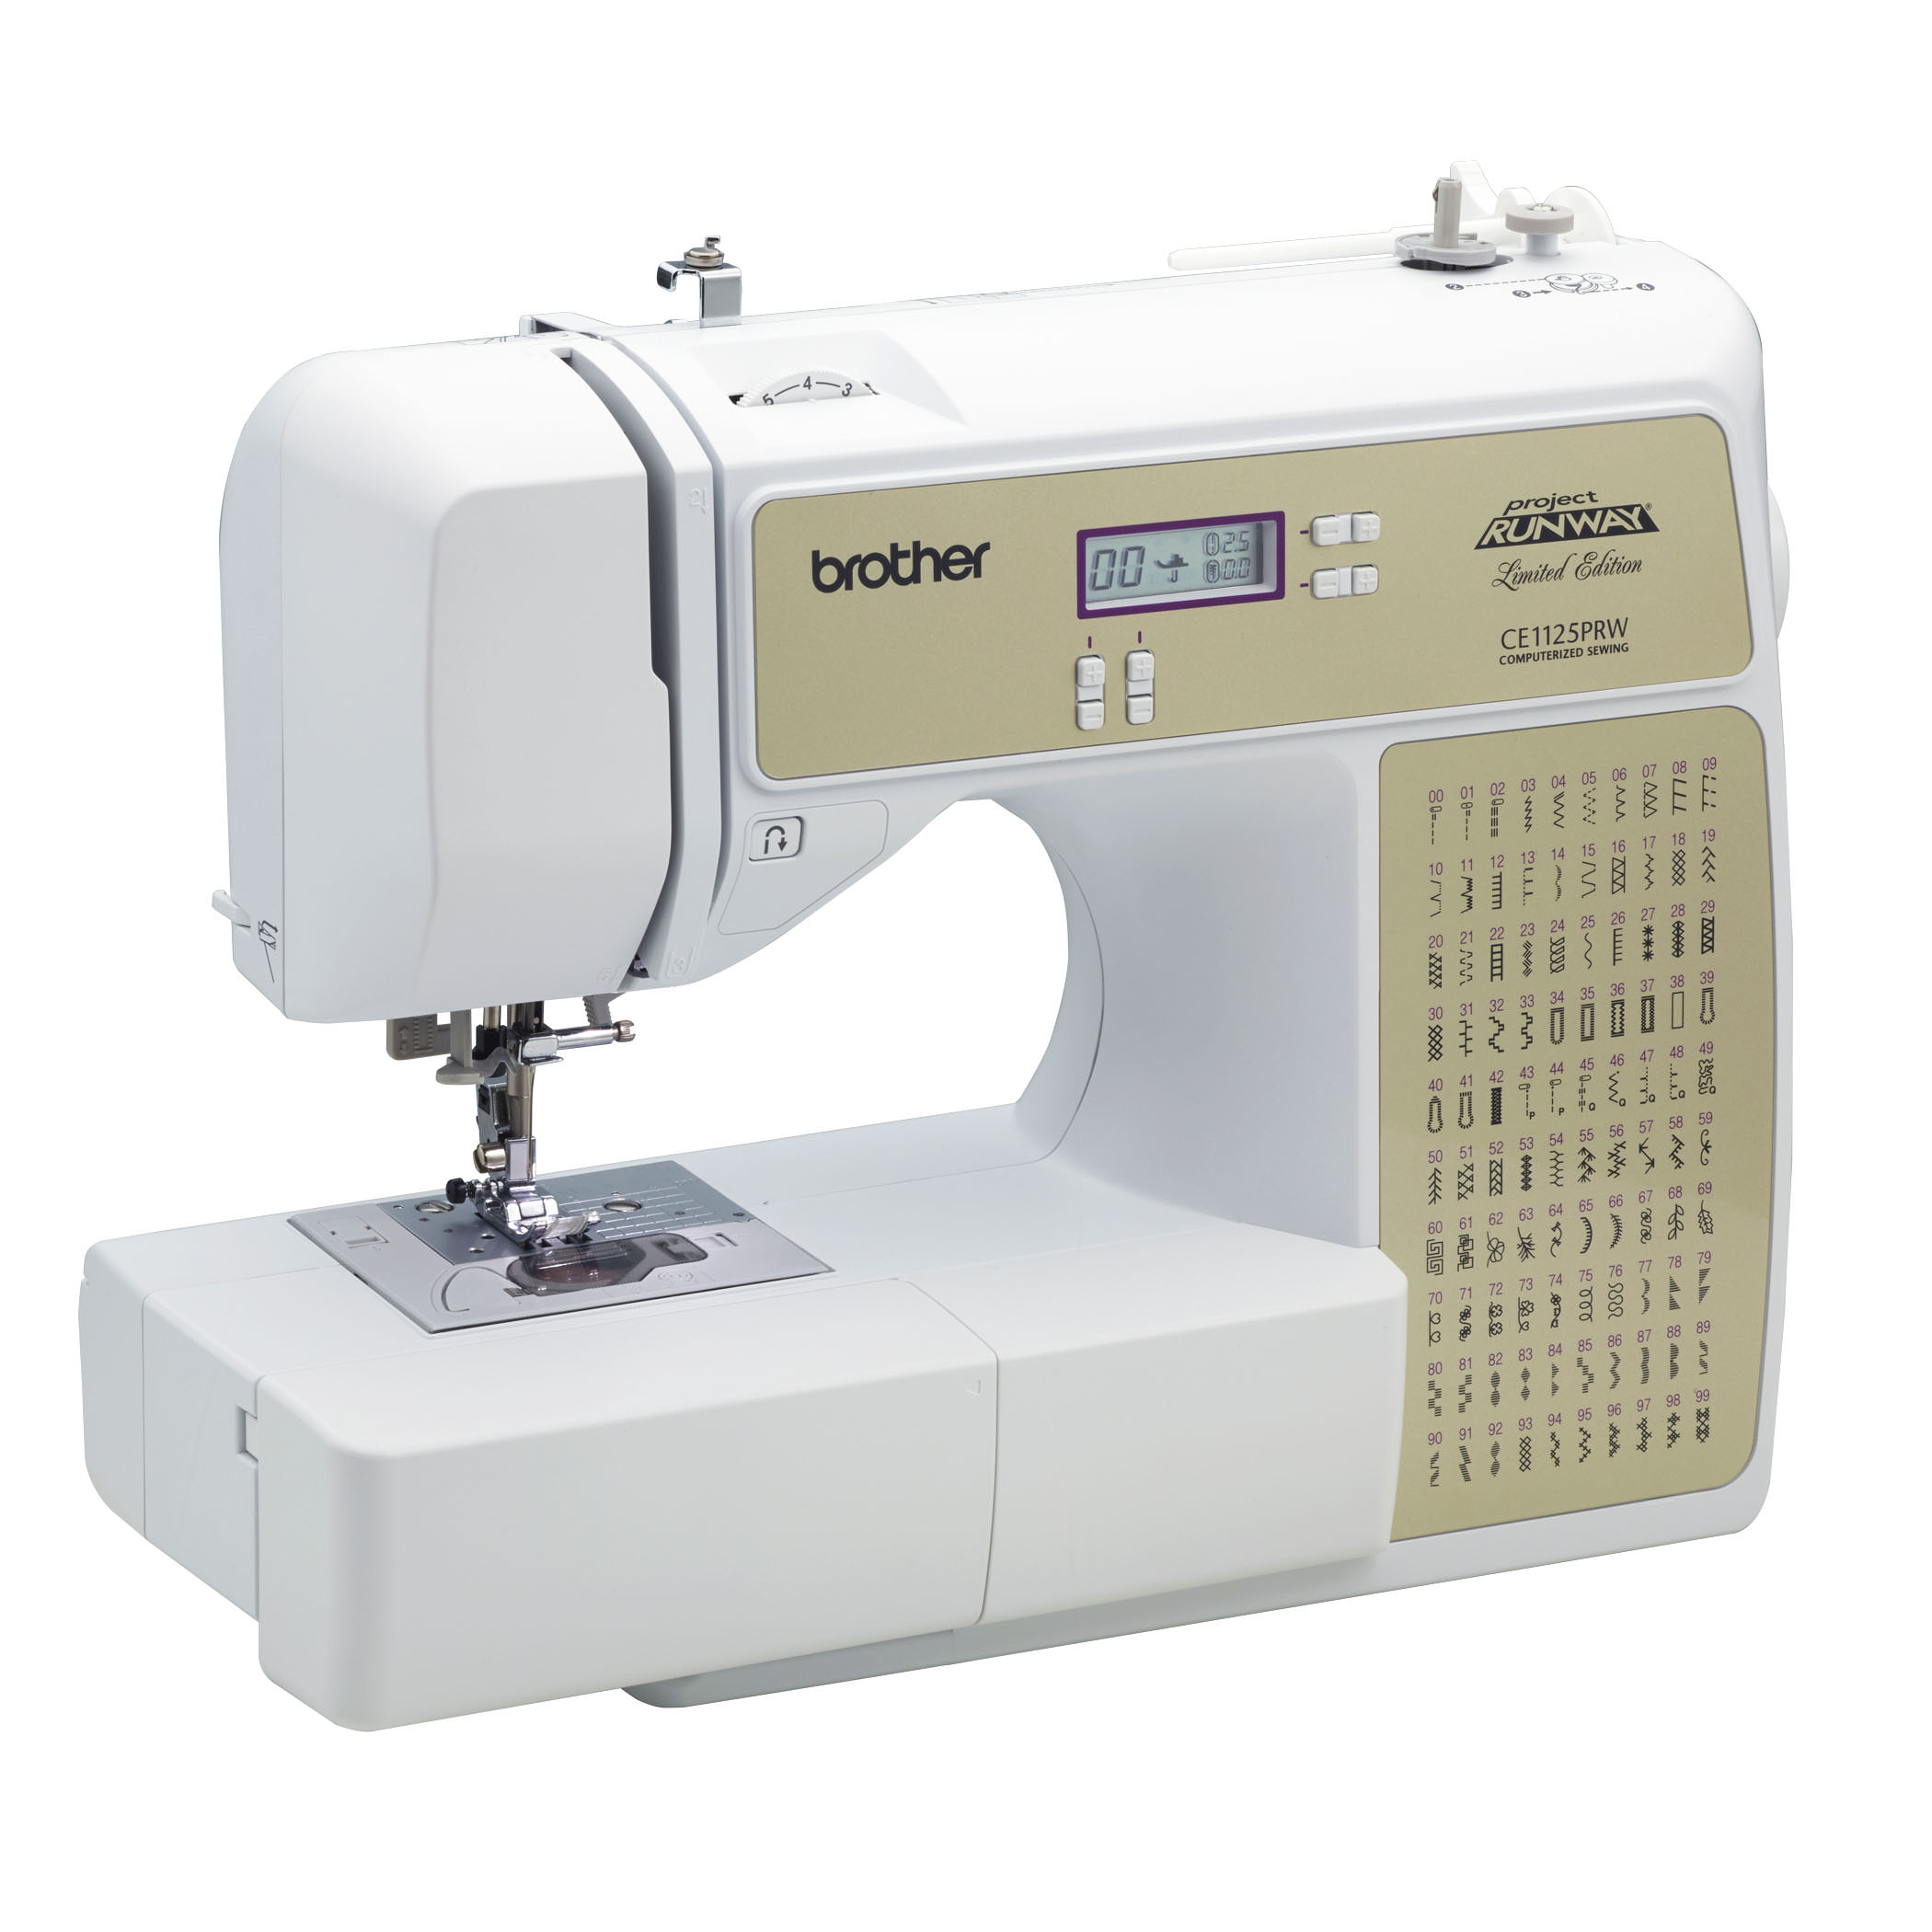 Brother computerized 100-stitch project runway sewing machine.